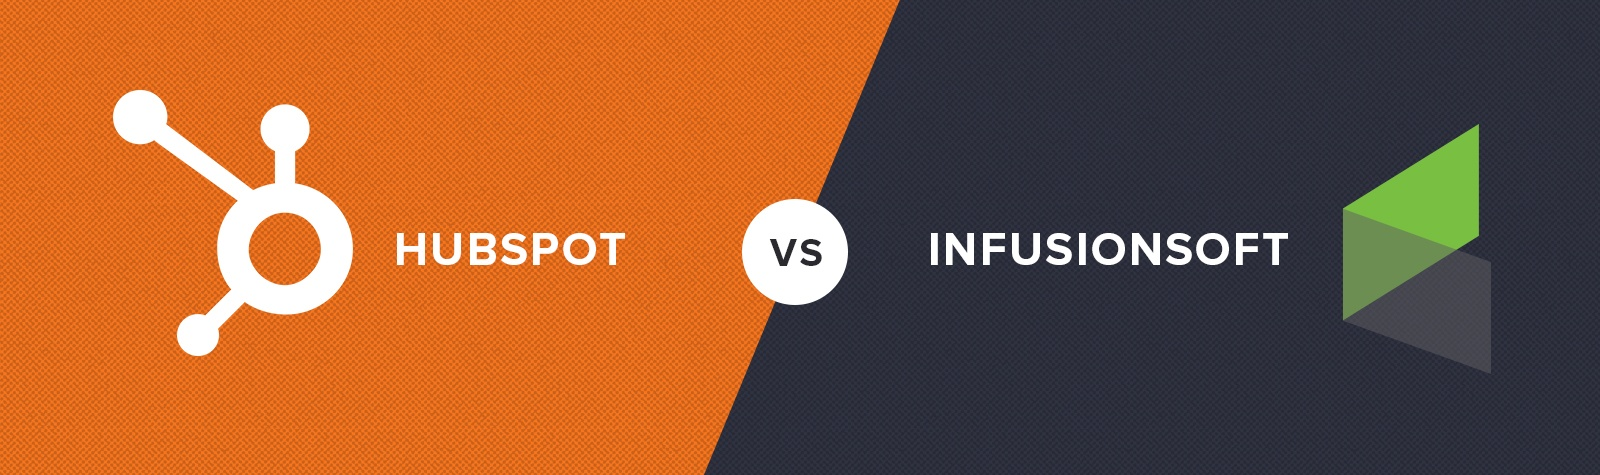 Infusionsoft VS HubSpot (Revisited 2017)